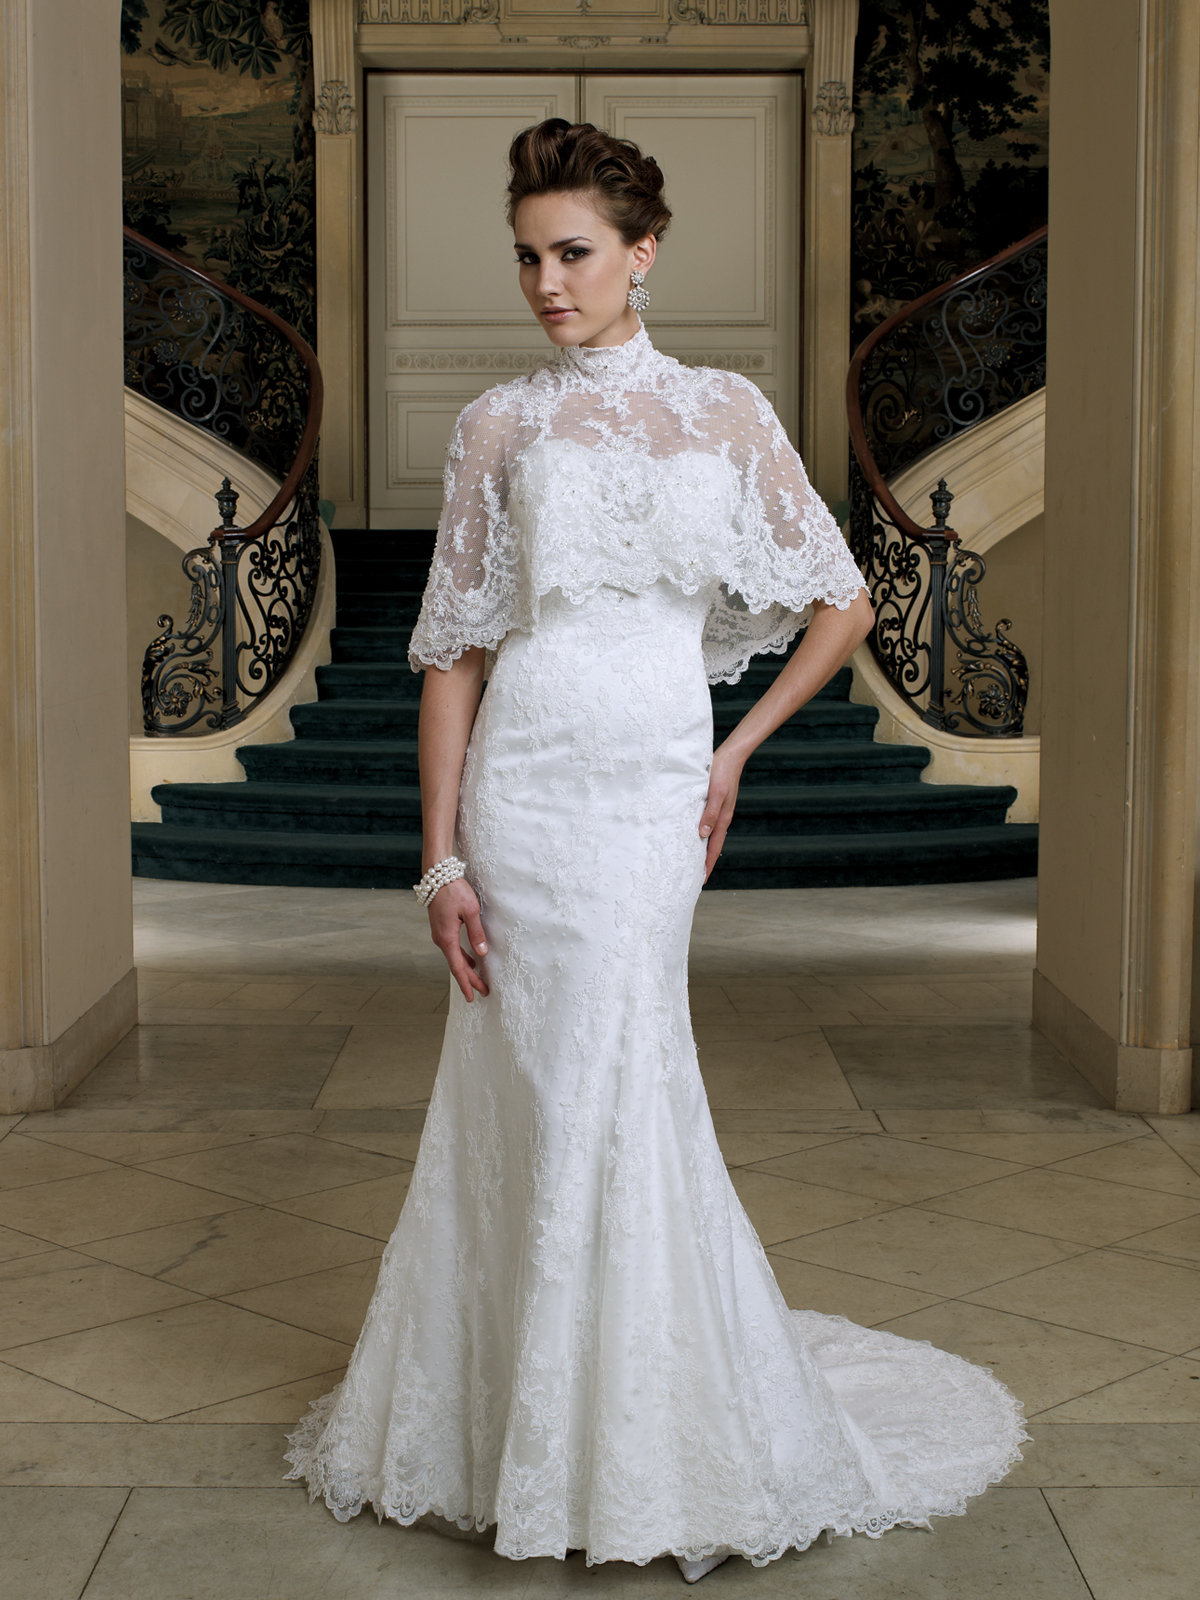 2012-wedding-dress-trends-lace-capes.original